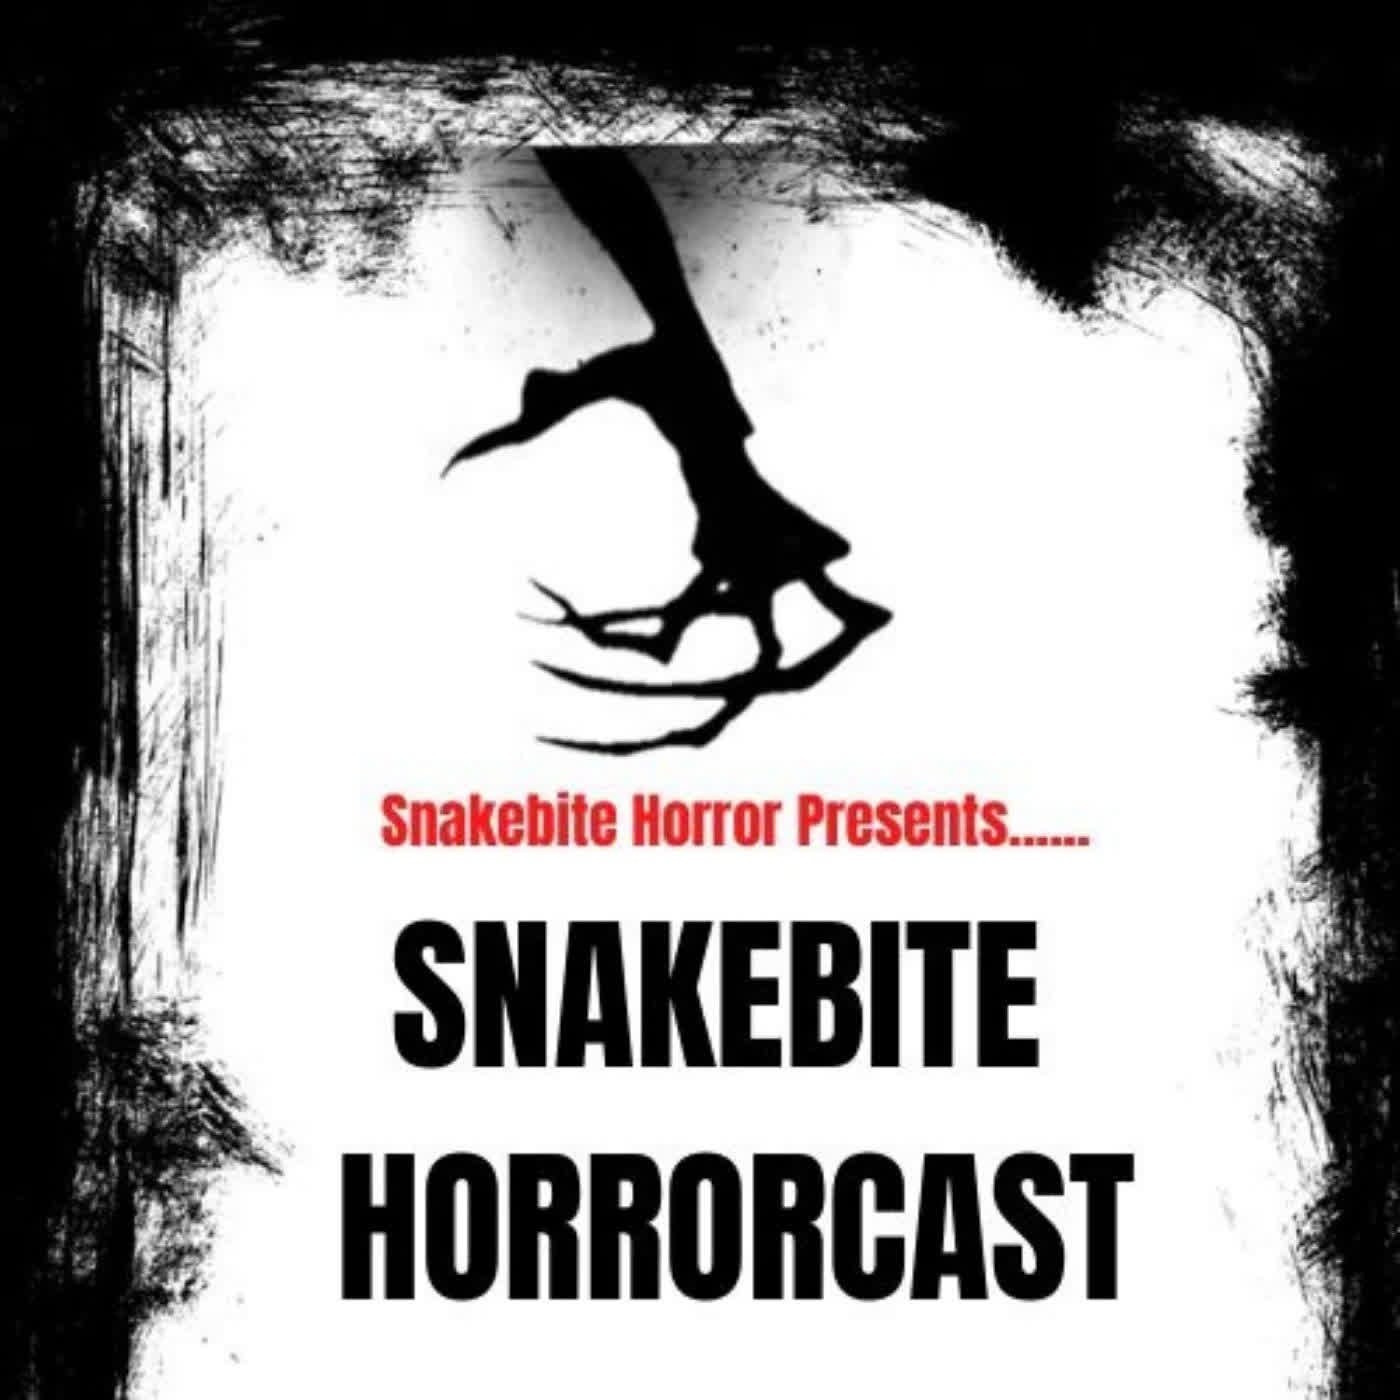 Snakebite Horrorcast - S3 Ep2 - Wrong Turn (2021) & Willy's Wonderland